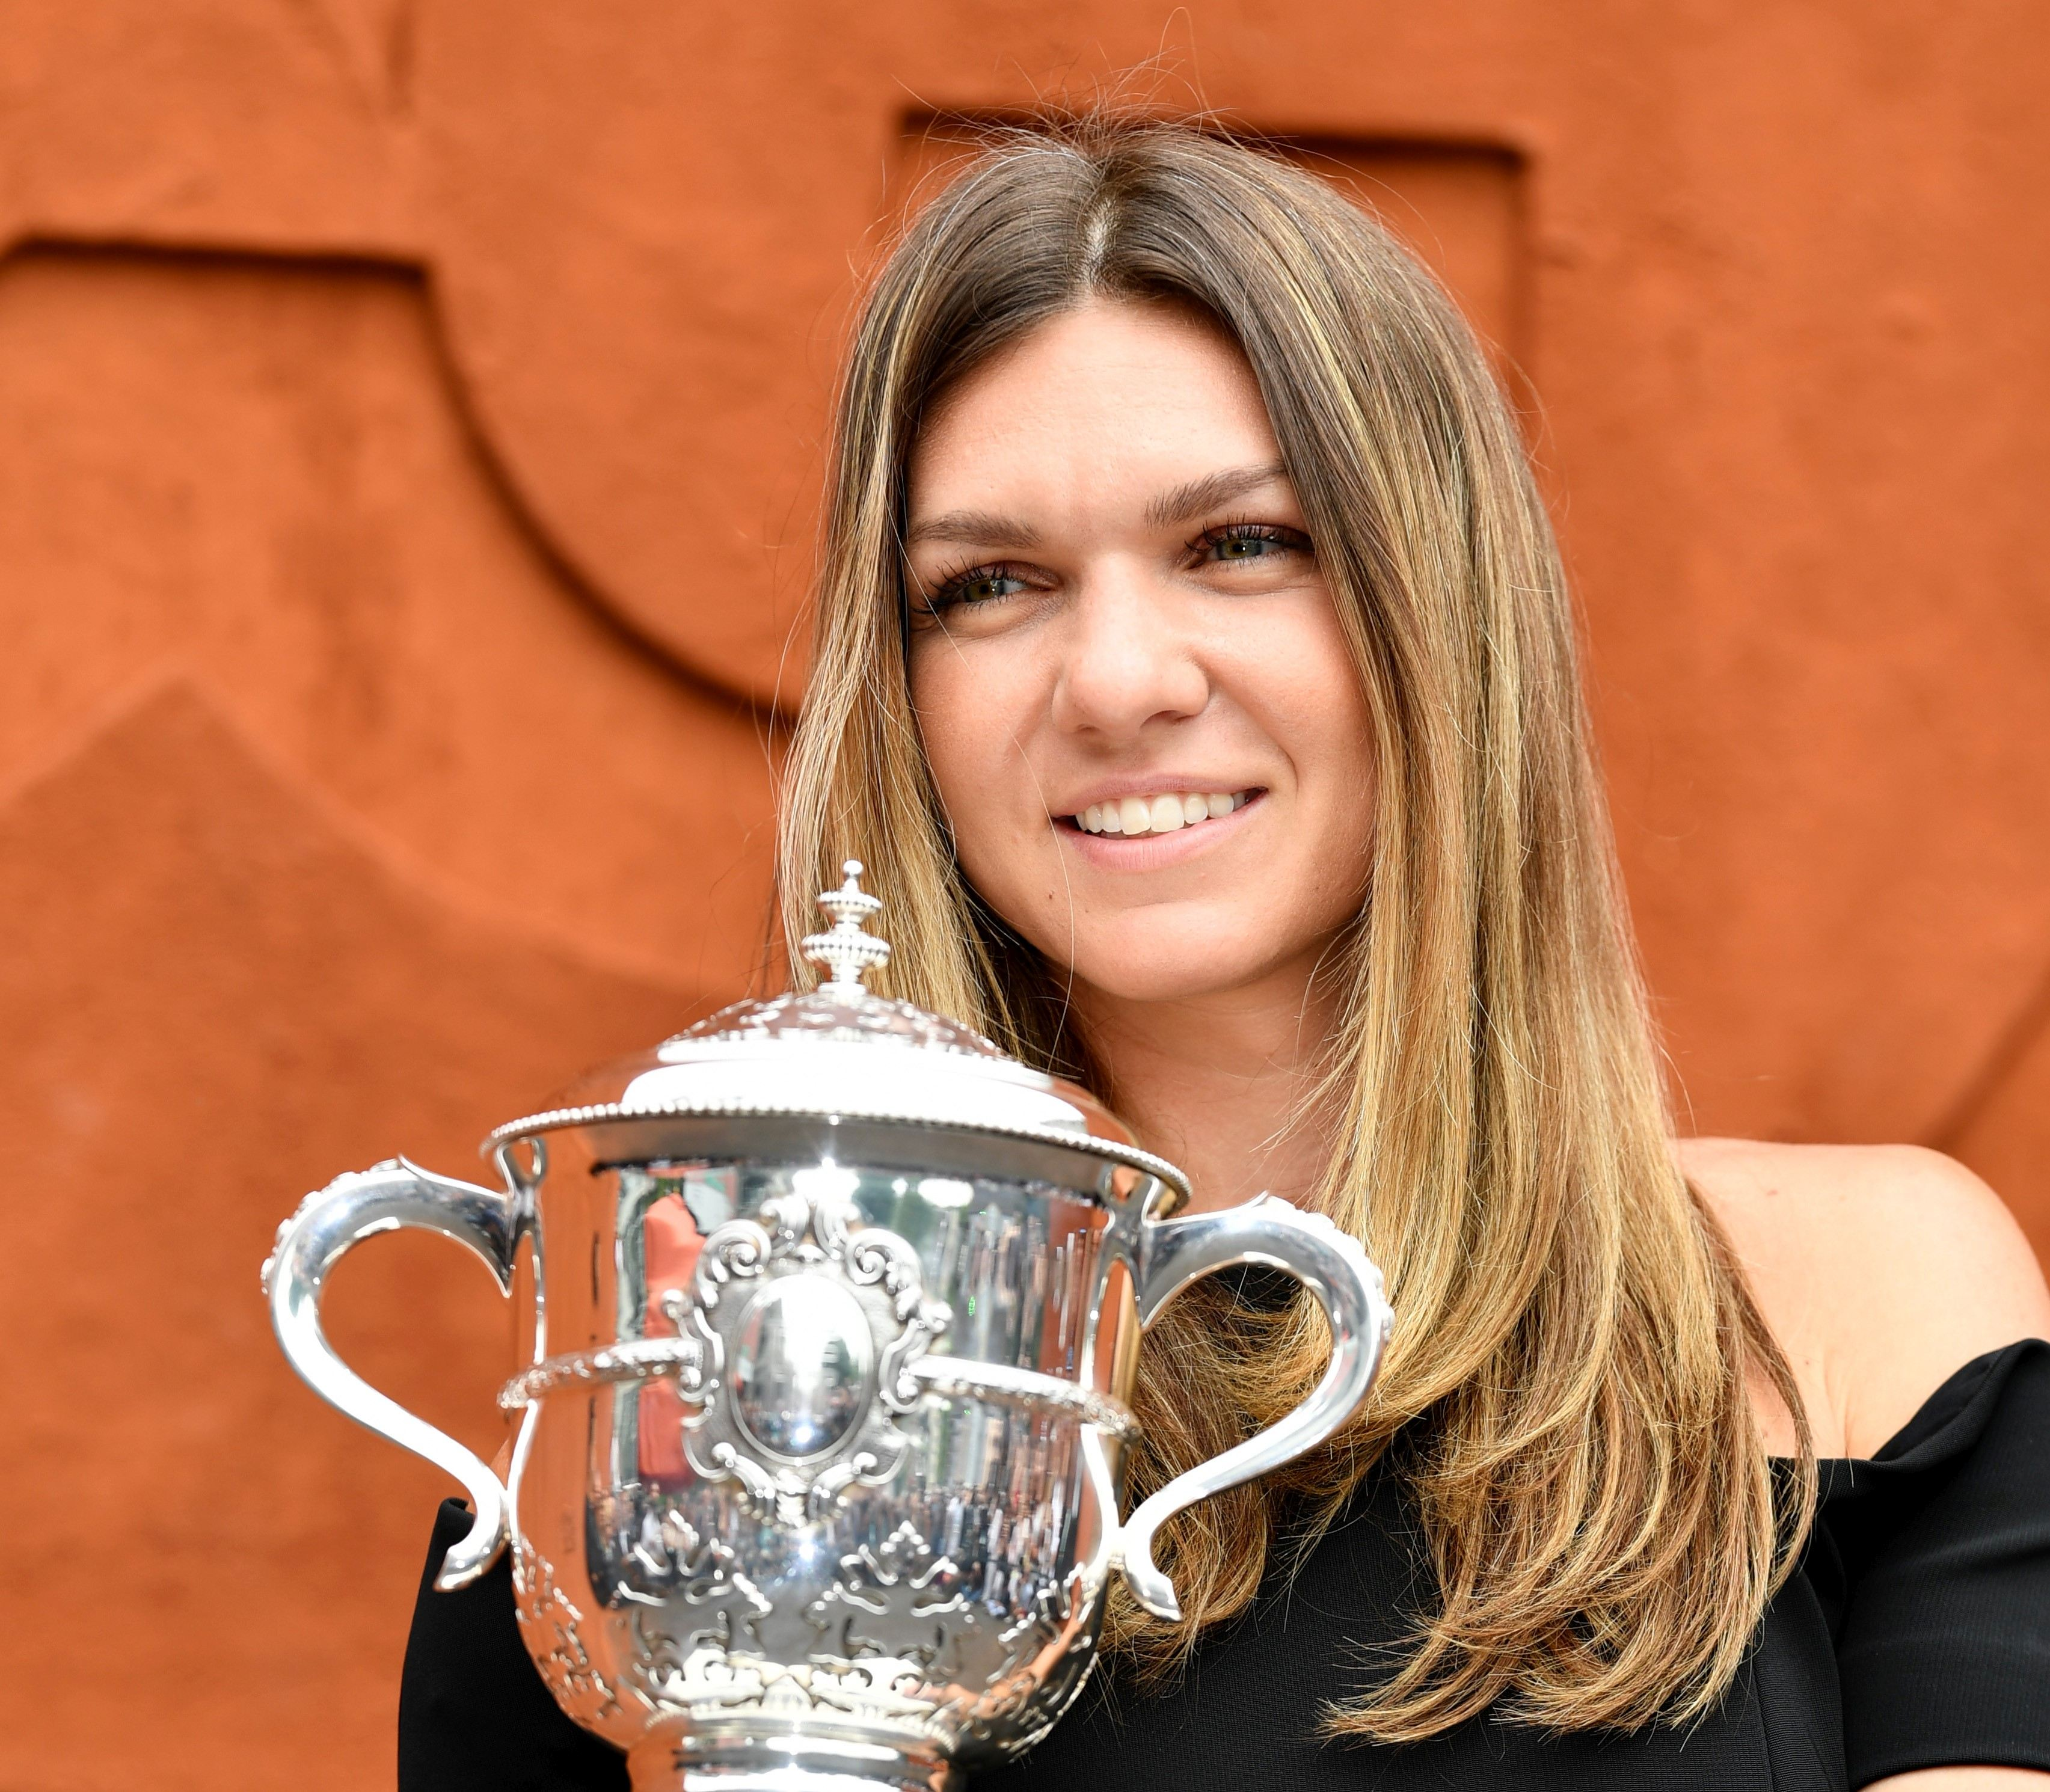 PARIS, FRANCE - JUNE 10: Simona Halep of Romania poses with championship trophy after winning her French Open finals match against Sloane Stephens (not seen) of the USA at Roland Garros Stadium in Paris, France on June 10, 2018. Mustafa Yalcin / Anadolu Agency